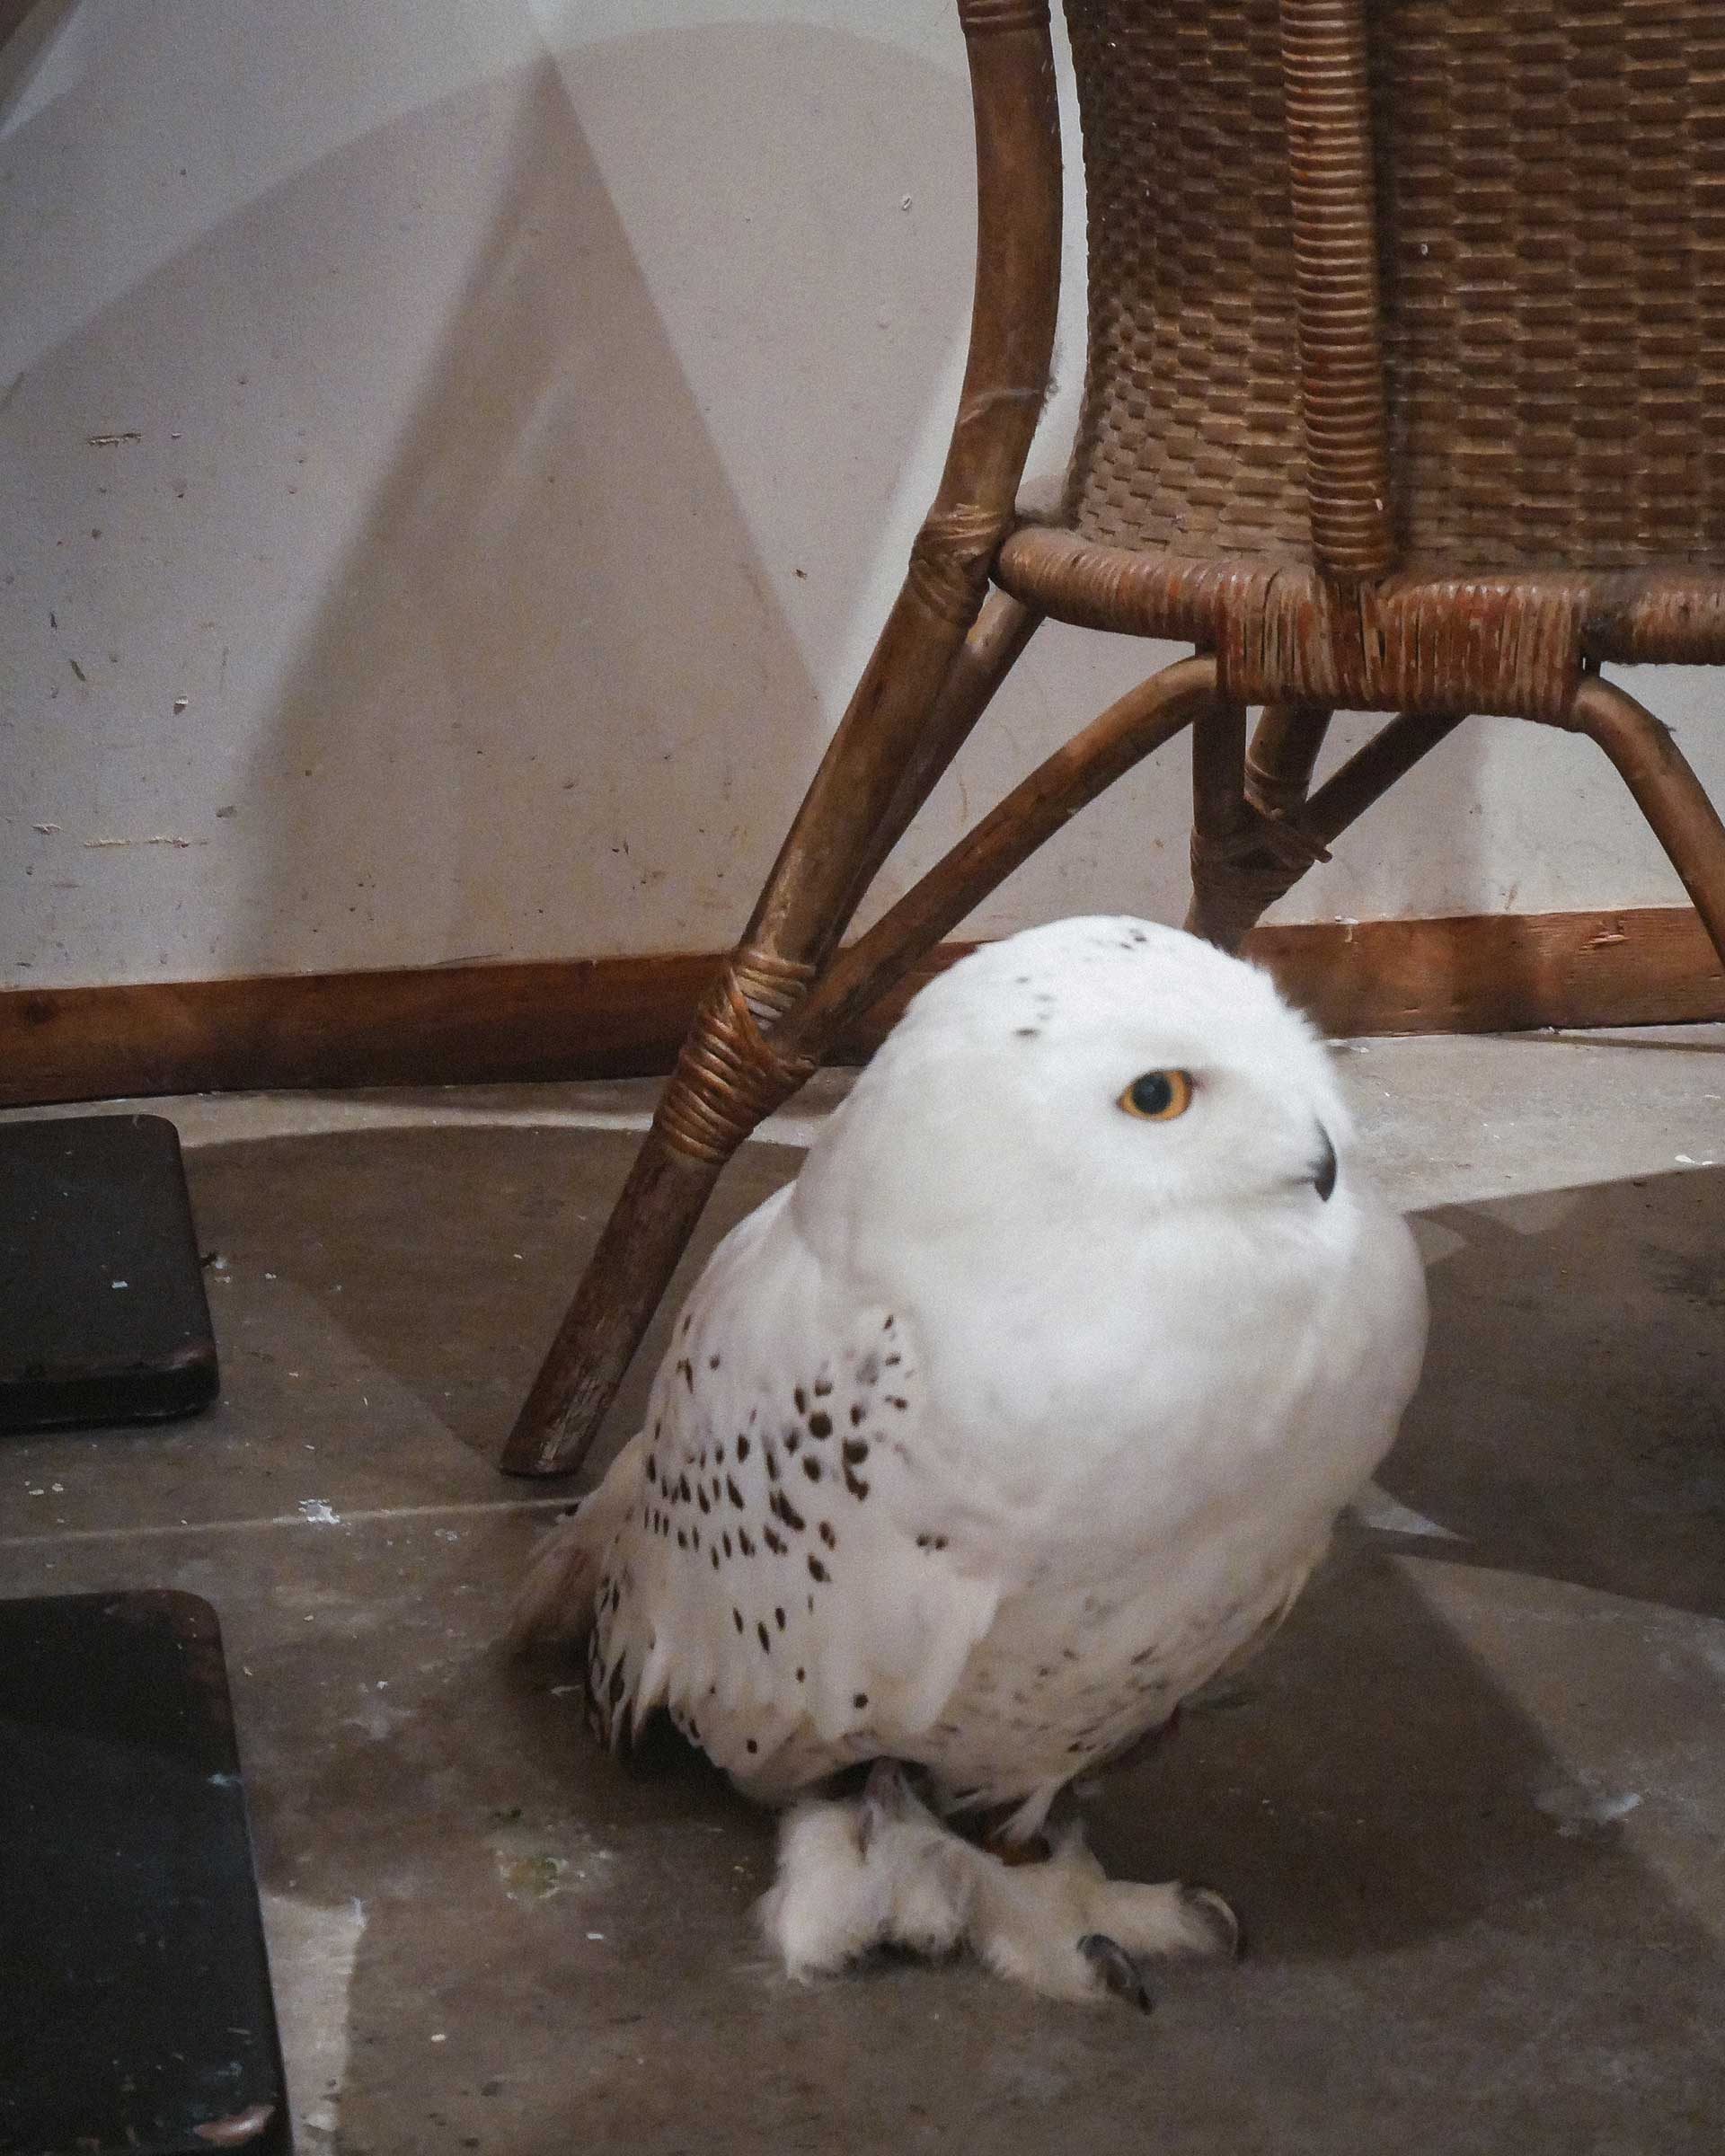 Snowy Owl : Sea-chan at Cafe HOOT HOOT